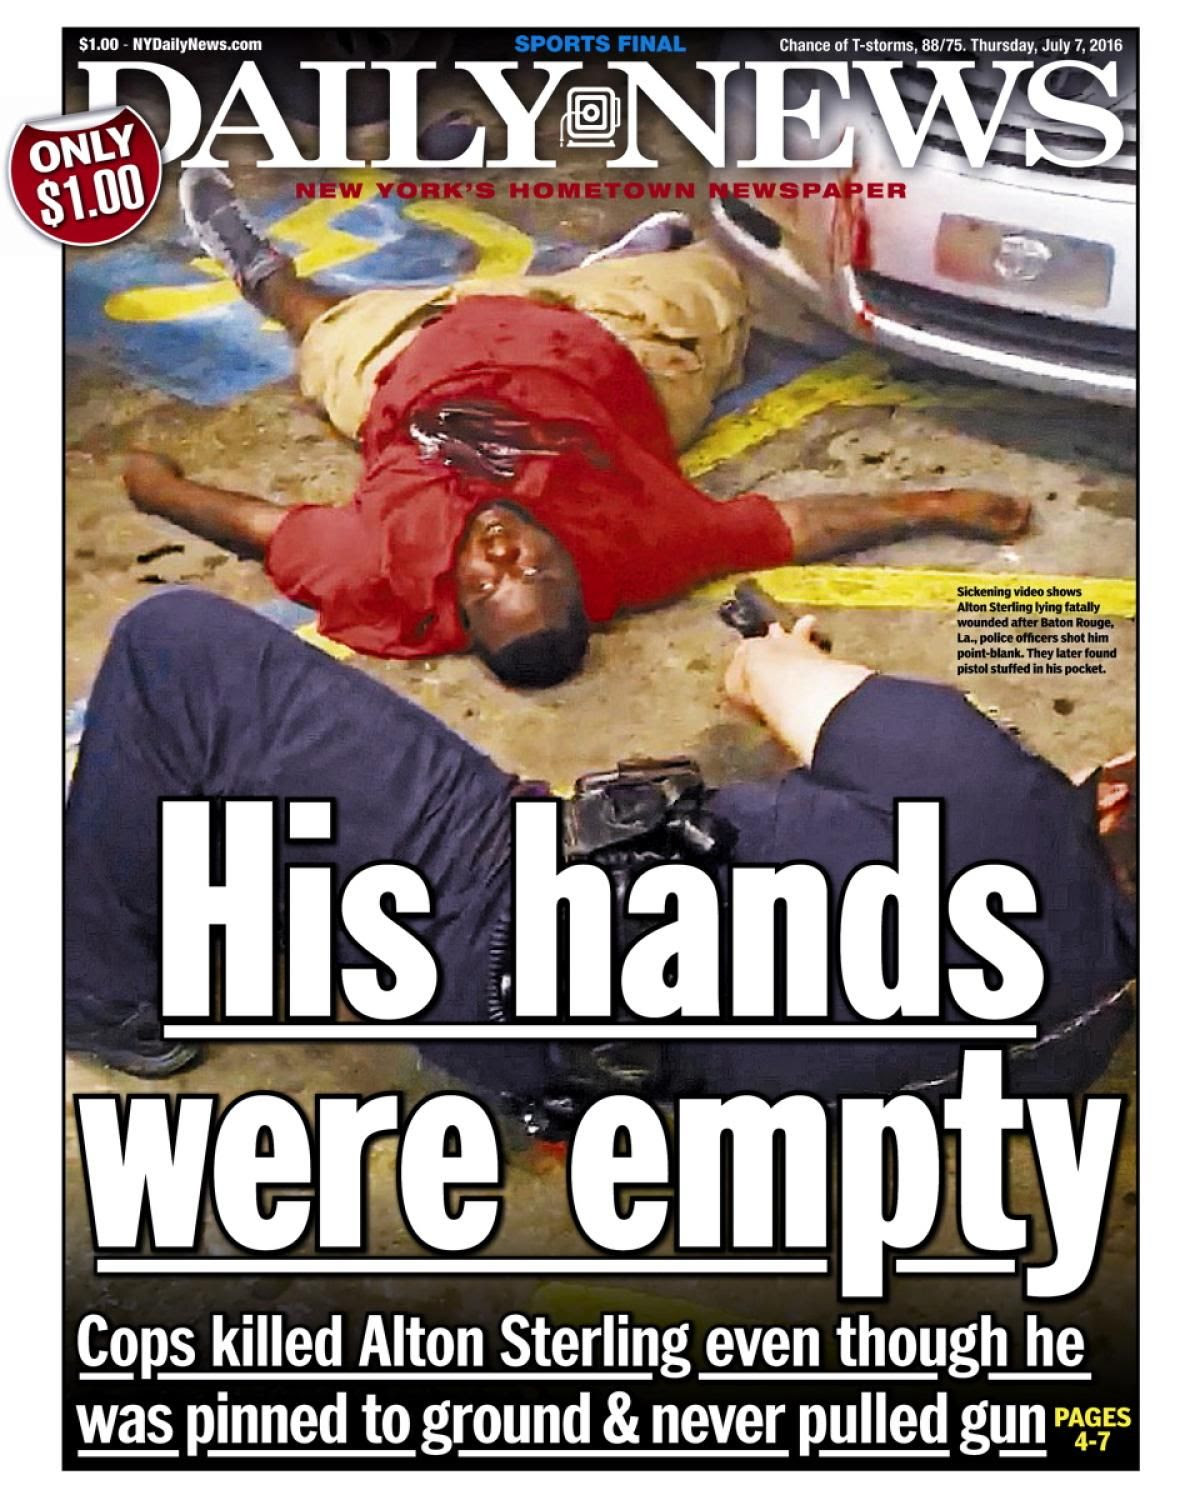 1000+ images about Best Front Pages of 2016 on Pinterest   Daily ...